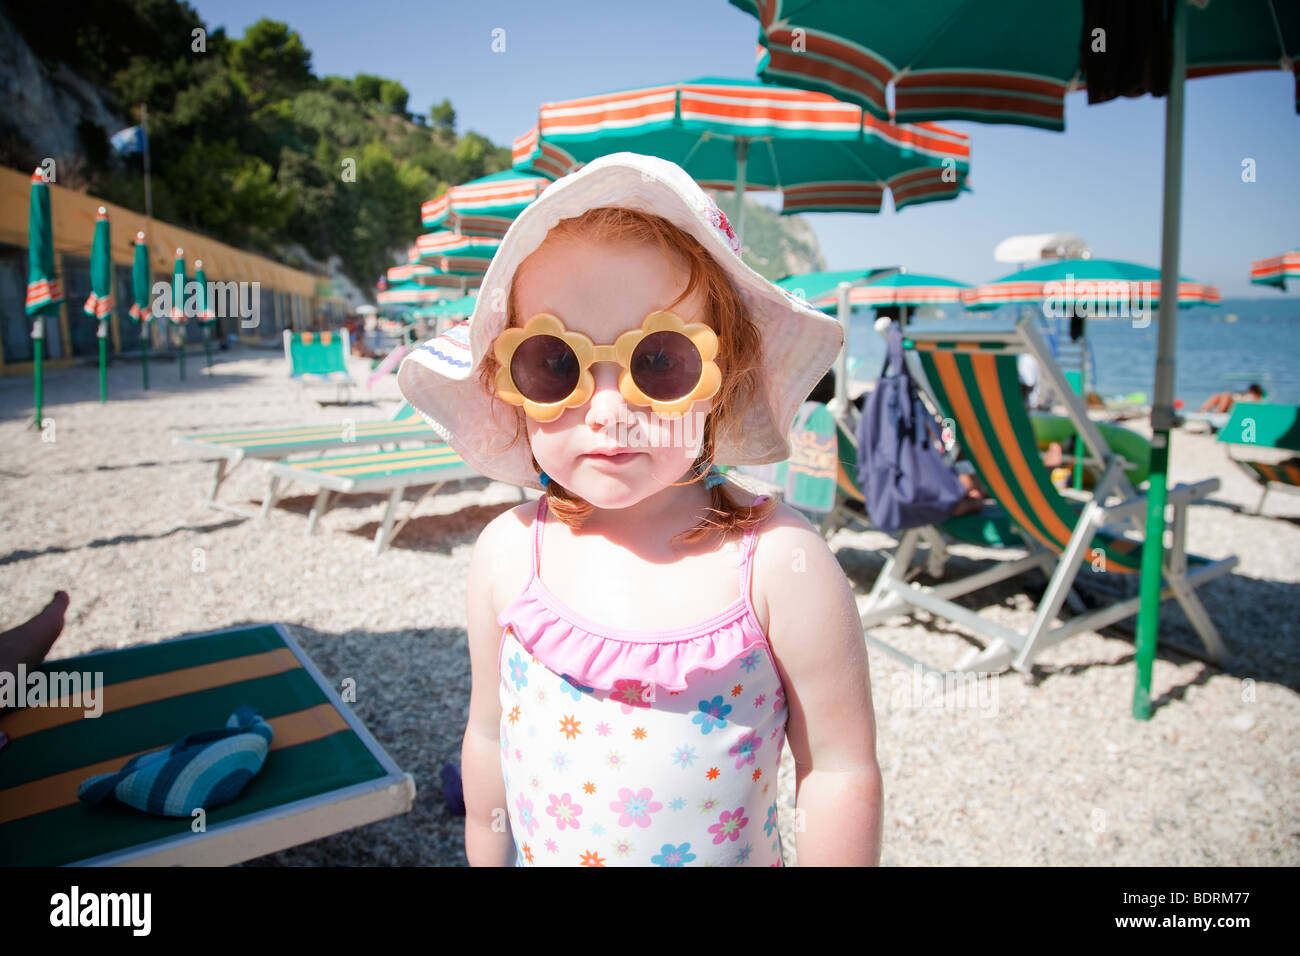 Fair skinned redhead girl on the beach wearing sunglasses and a sunhat - Stock Image